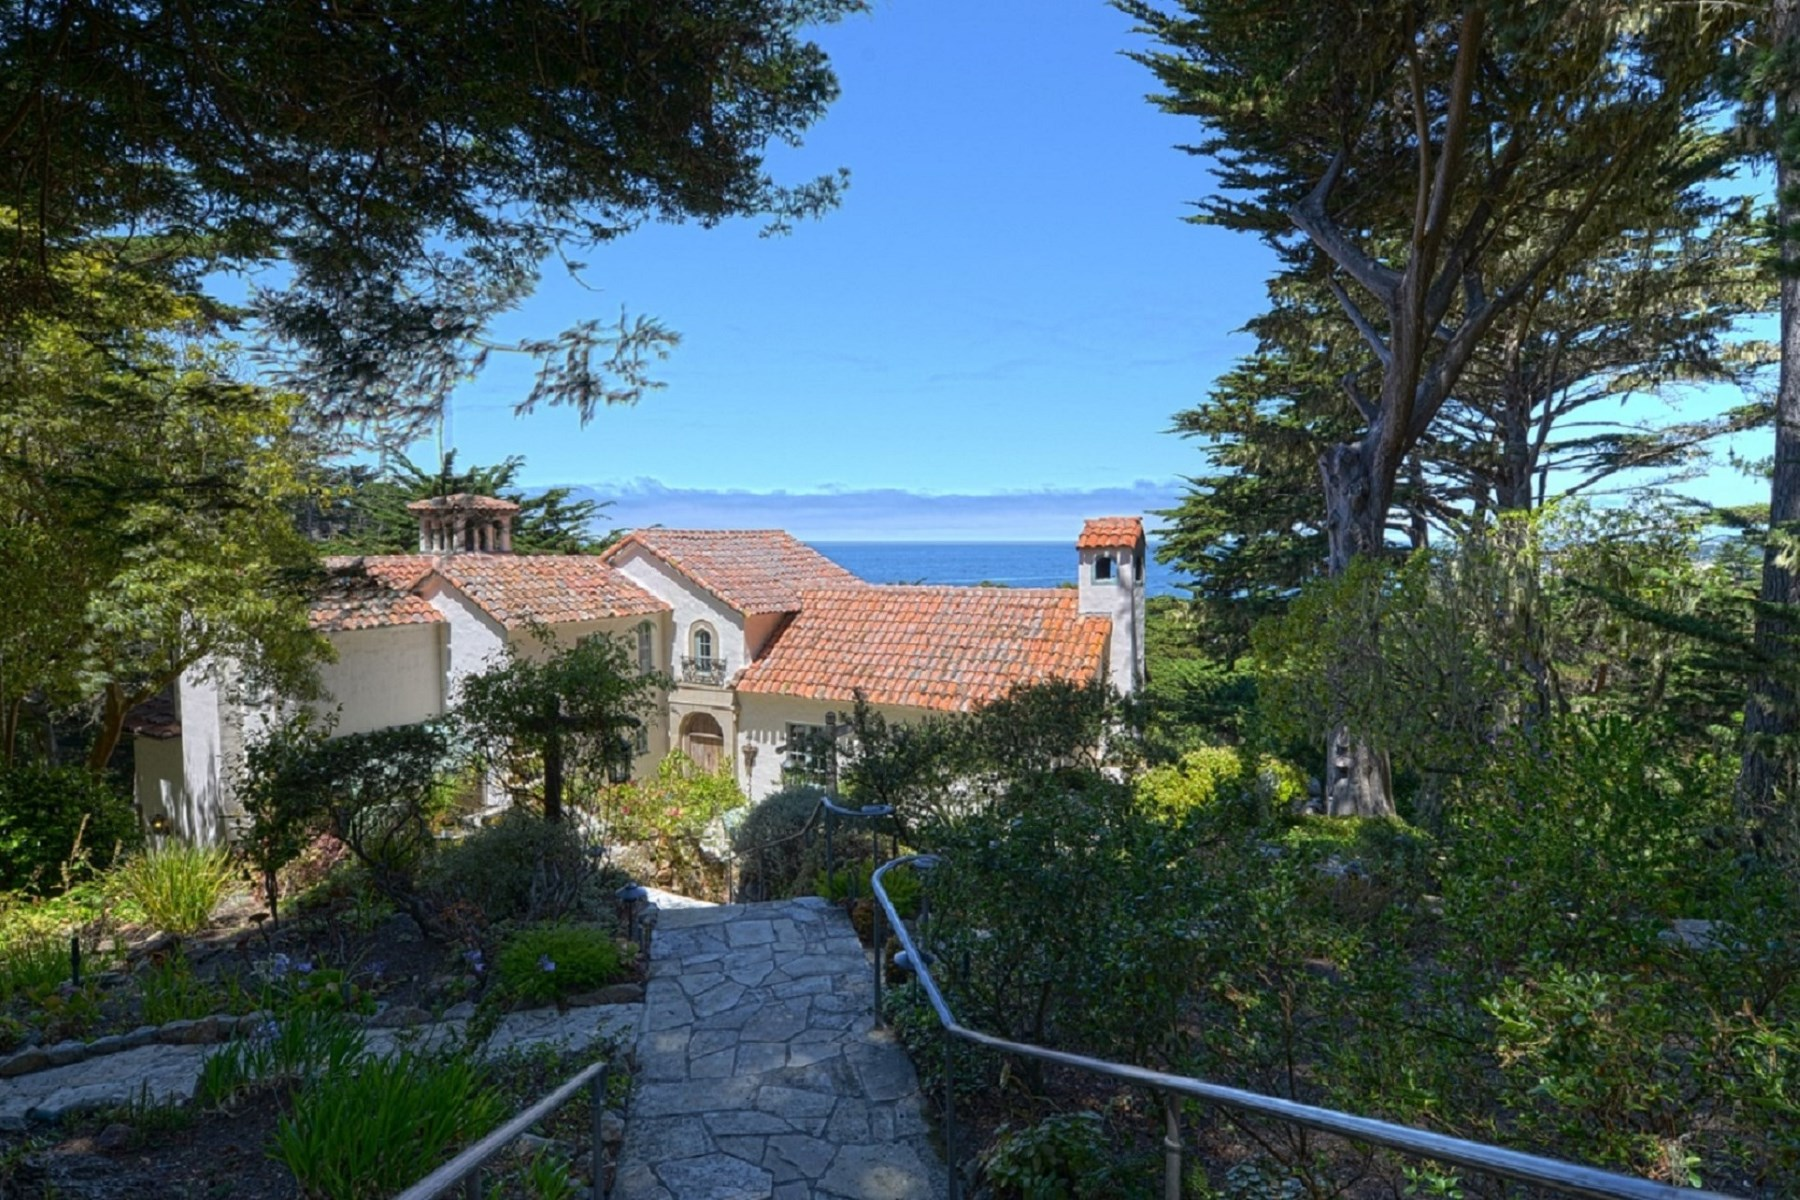 Single Family Home for Sale at Mediterranean Architectural Masterpiece 176 Spindrift Carmel, California 93923 United States